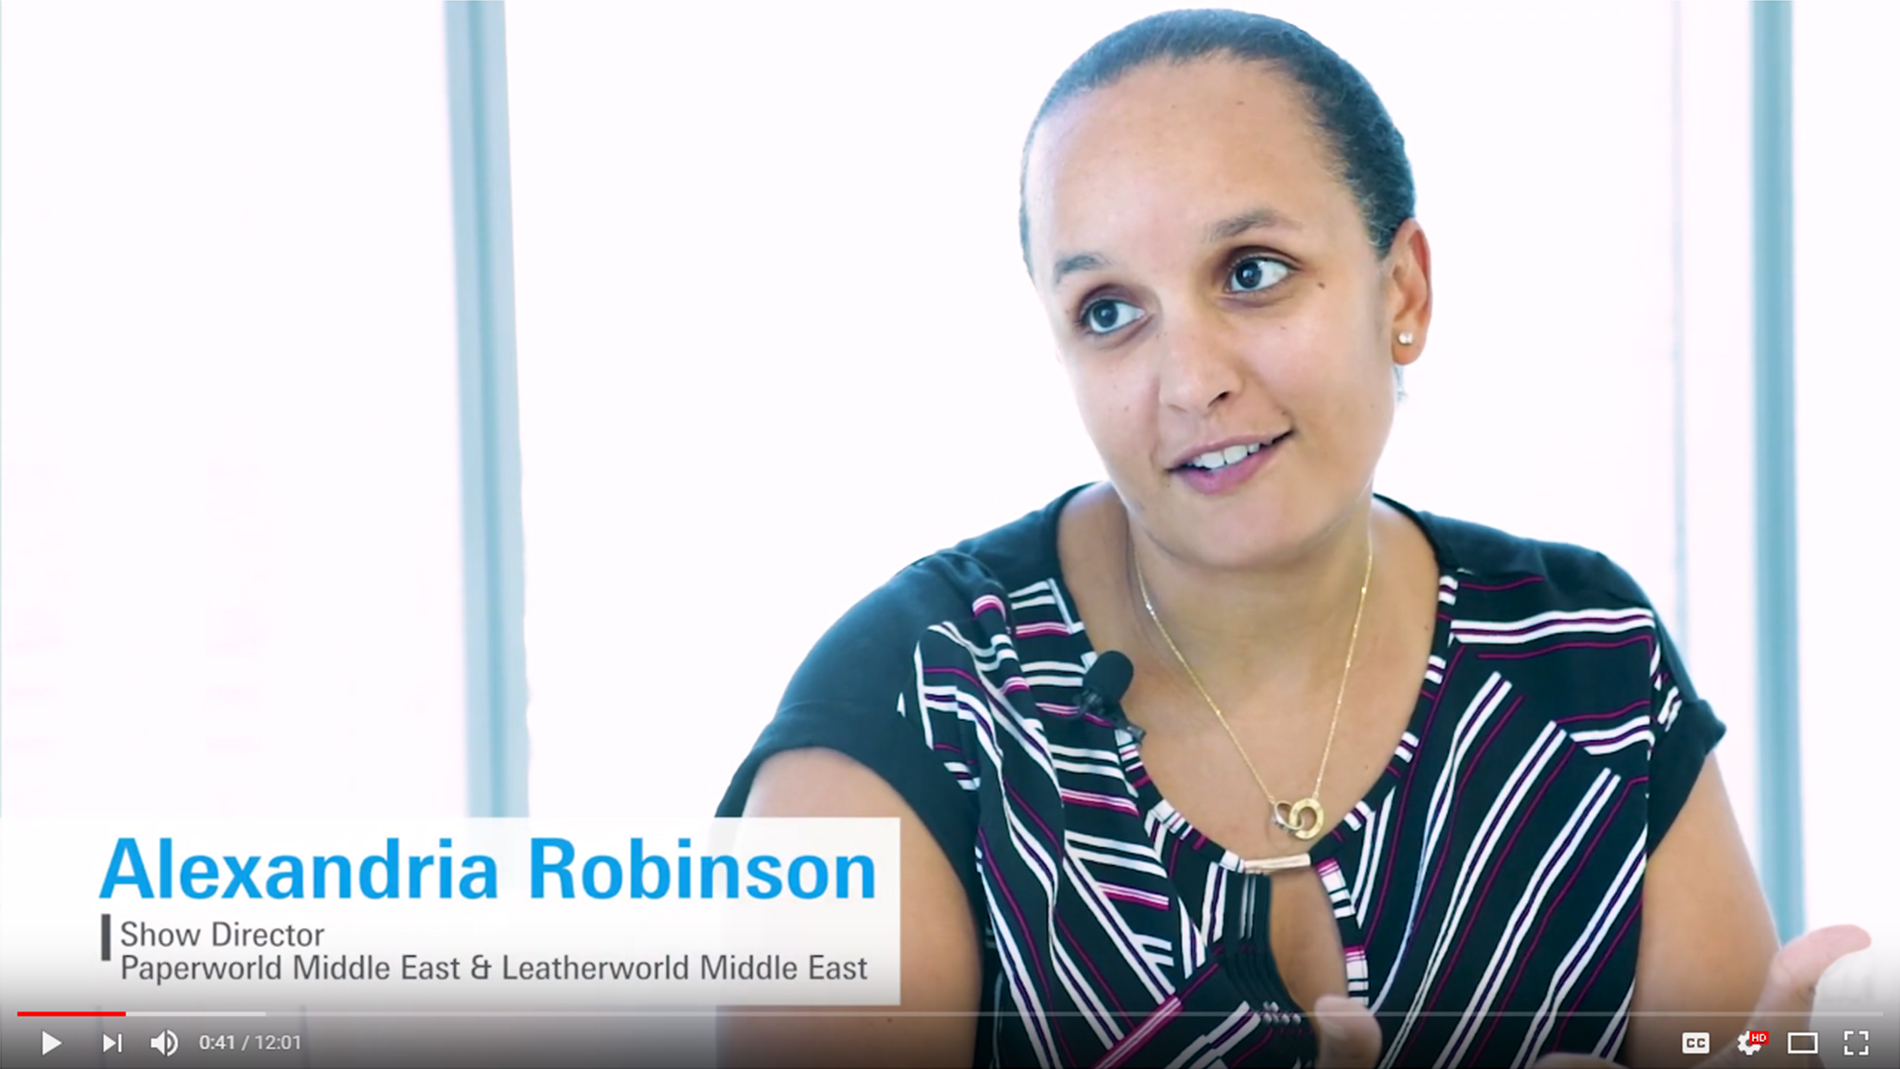 Paperworld Middle East - Alexandria Robinson Interview